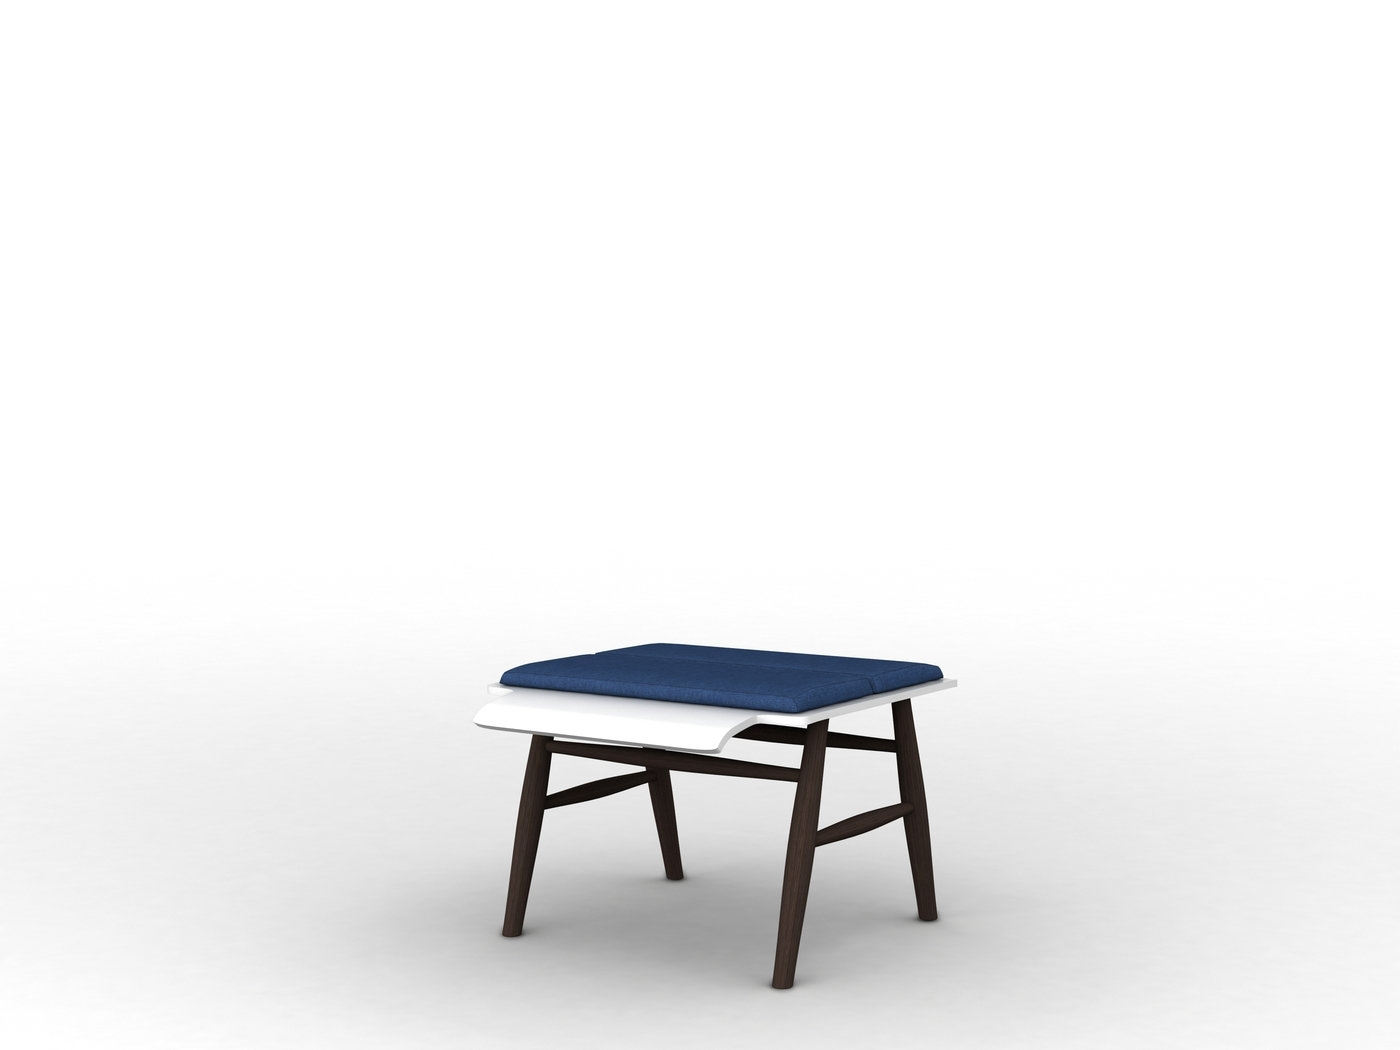 B Rollwai Ho Cheung At Coroflot Pertaining To Fashionable Broll Coffee Tables (View 1 of 20)